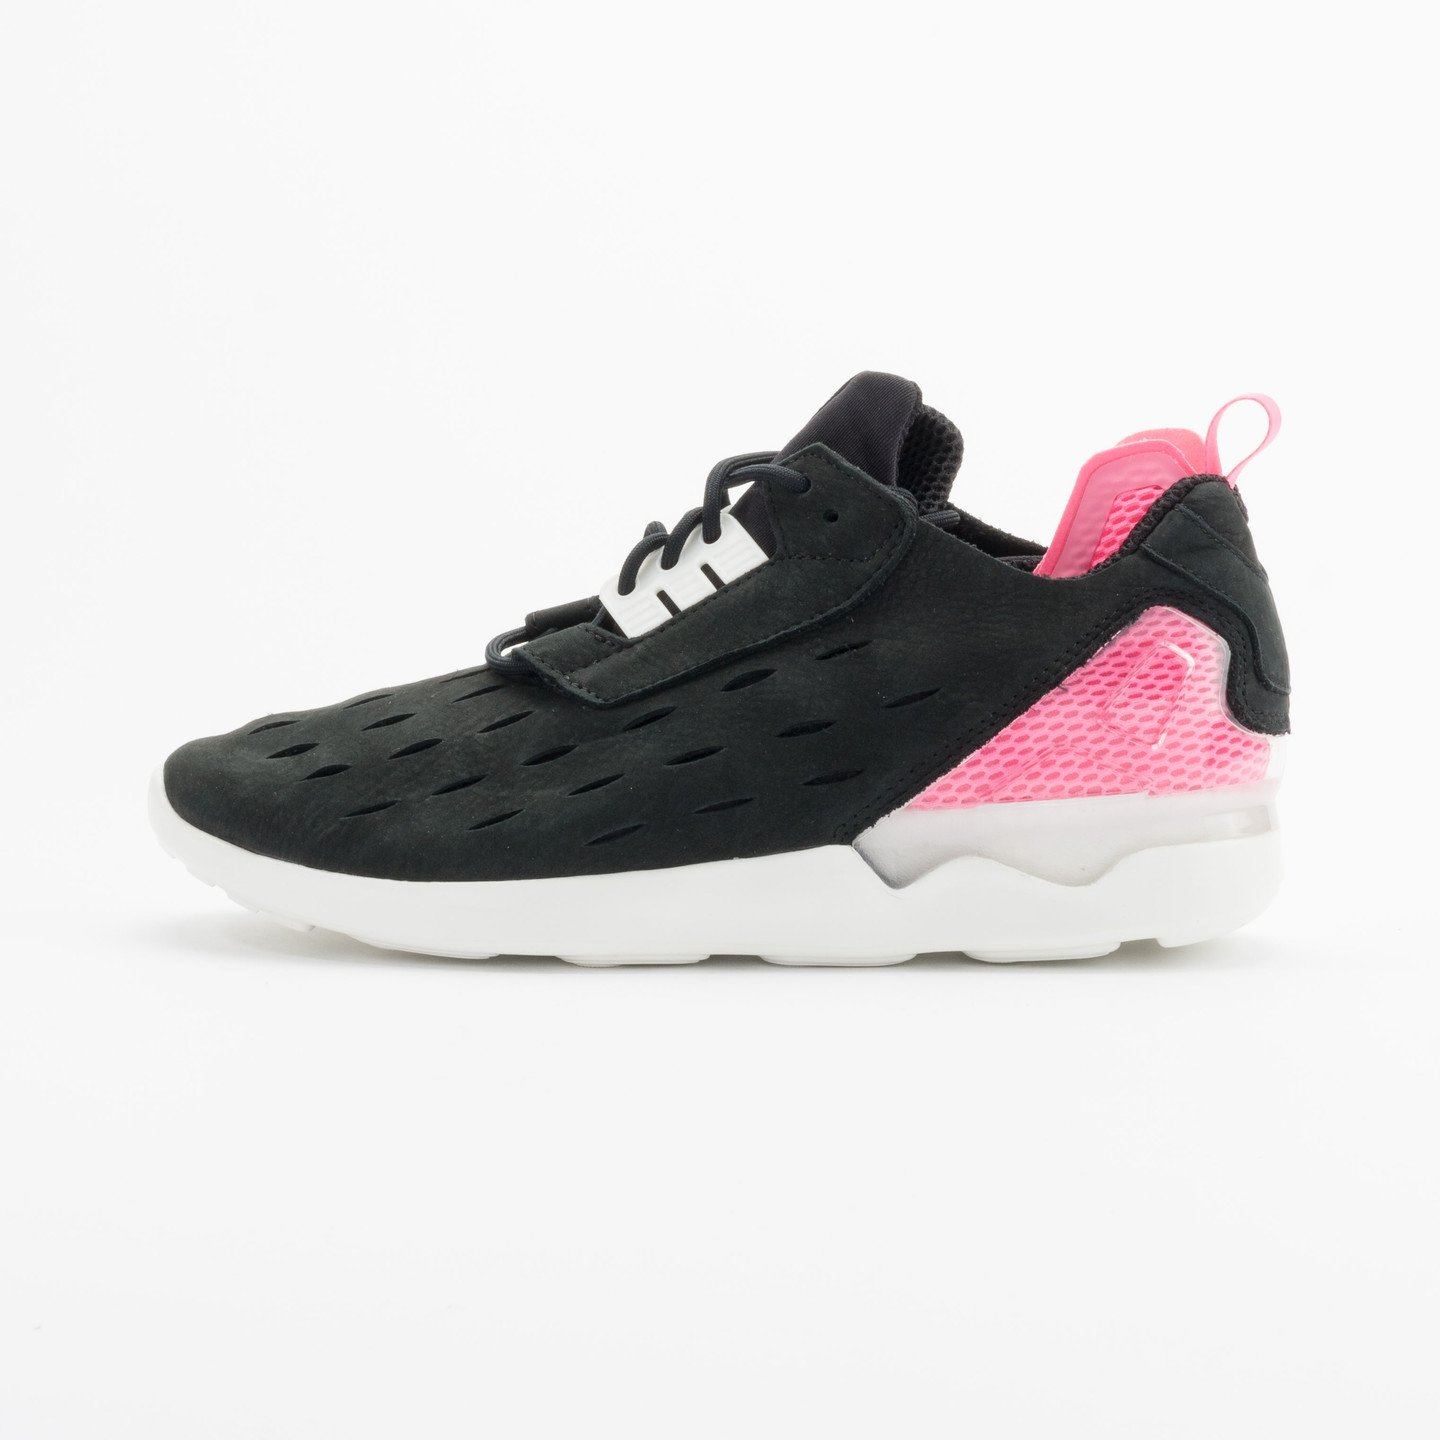 Adidas ZX 8000 Blue Boost Black/Hot-Pink/White B25872-42.66